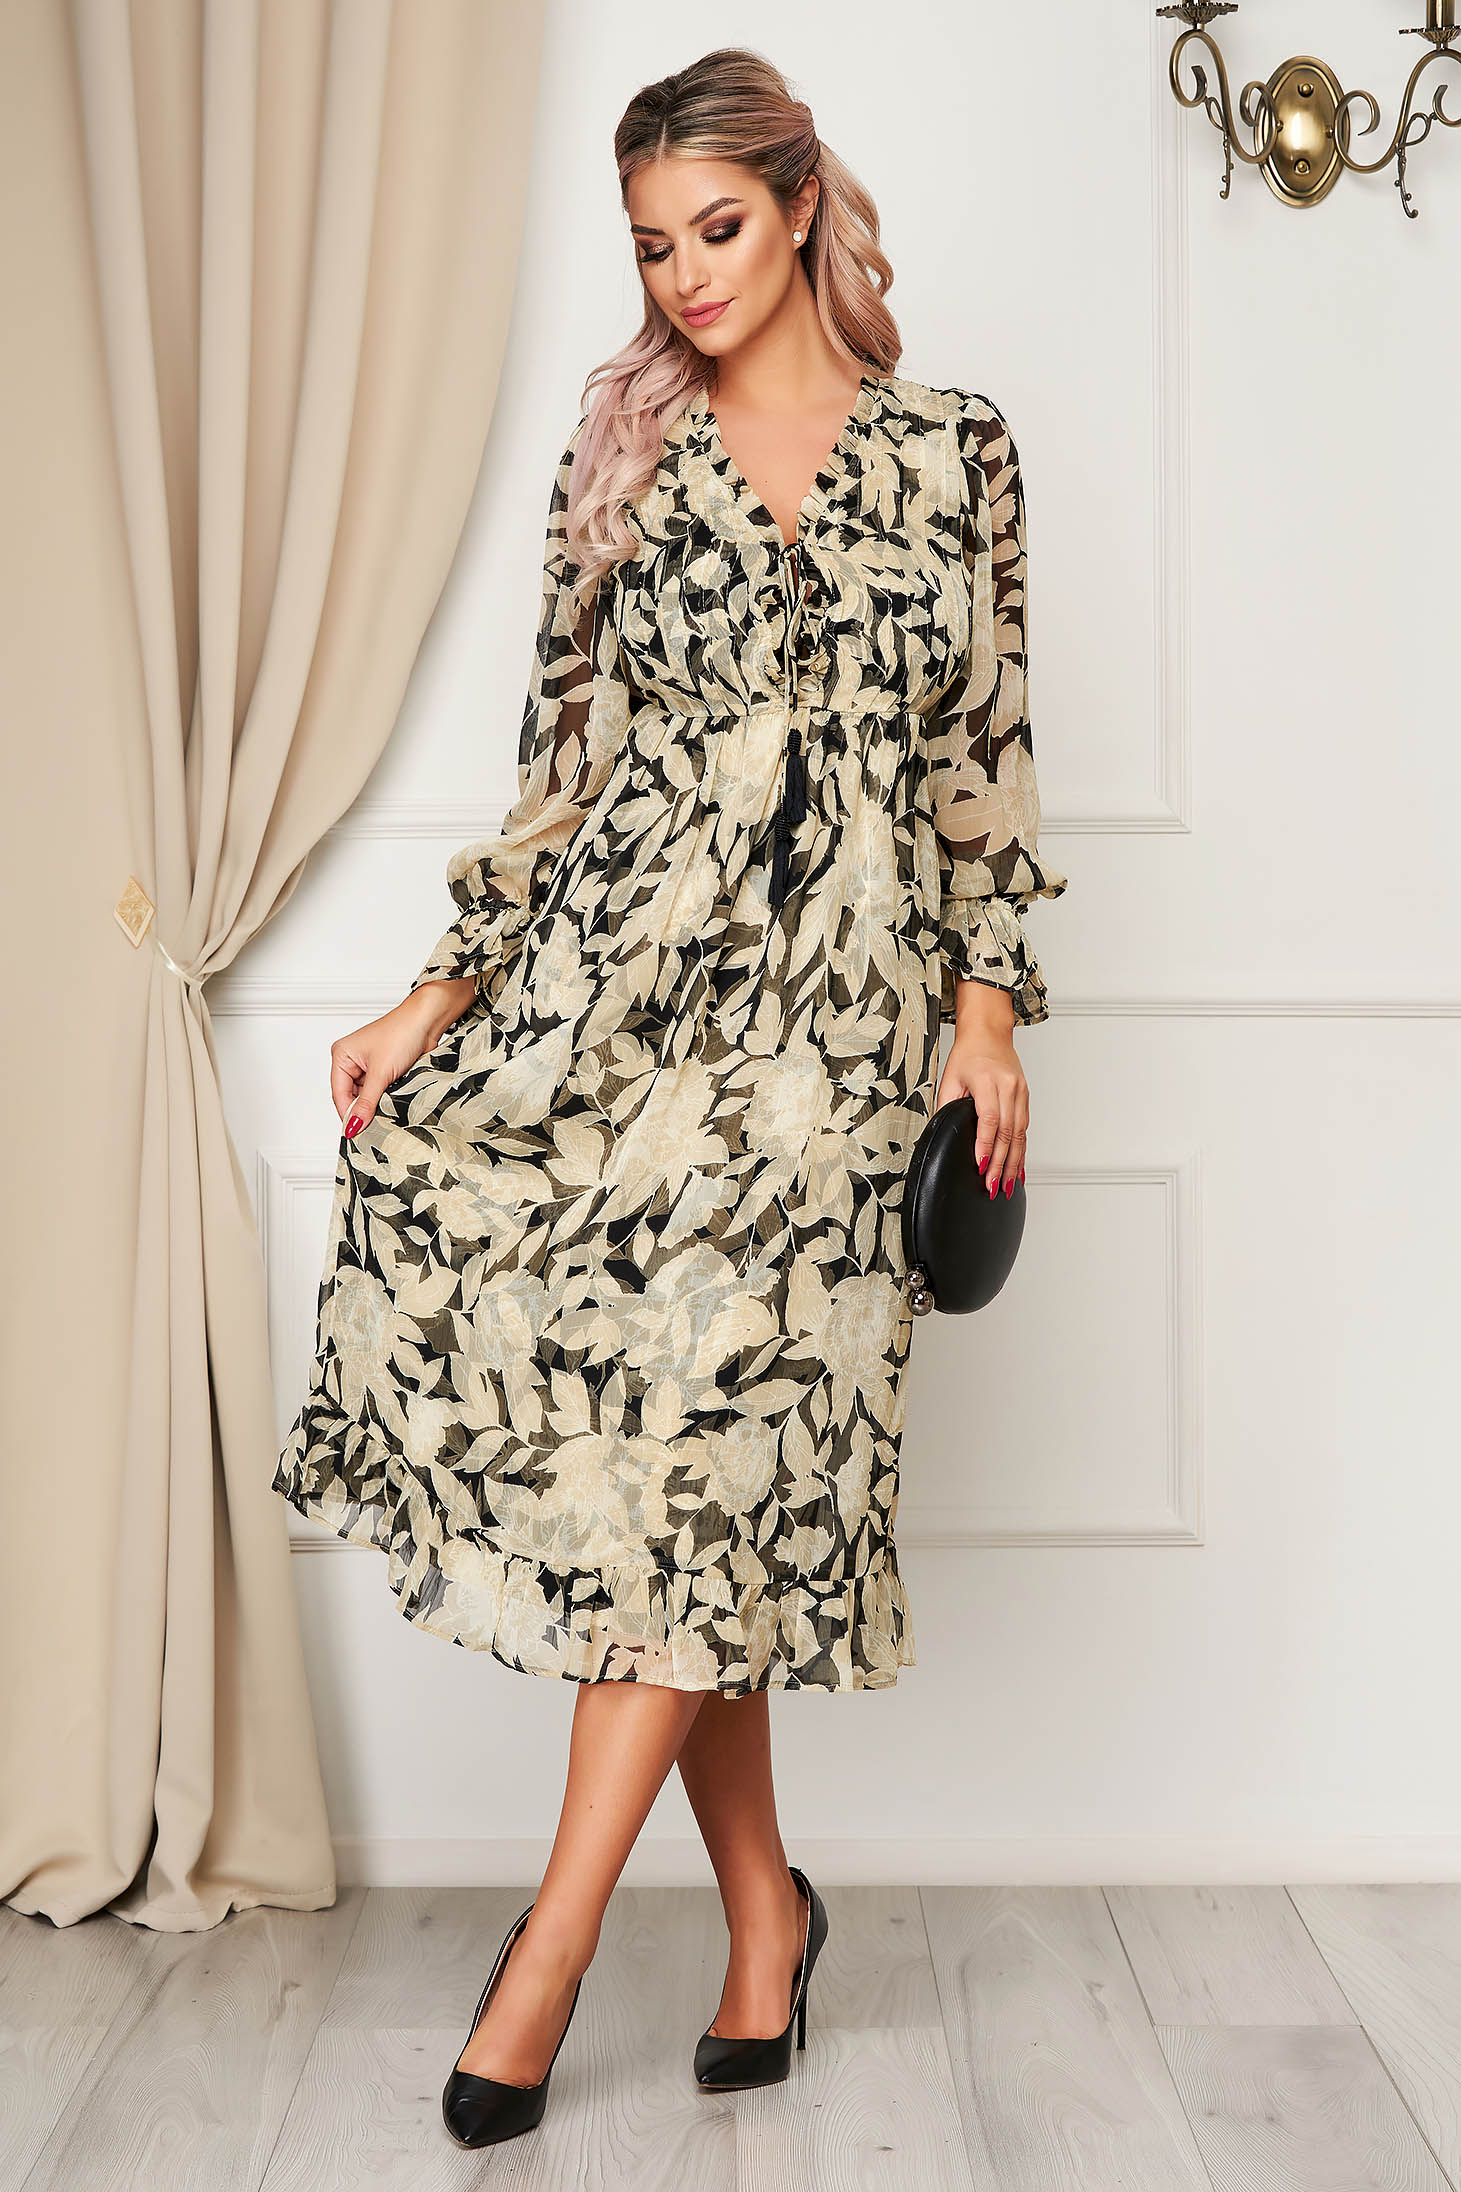 Cream dress elegant flaring cut with v-neckline voile fabric with floral prints